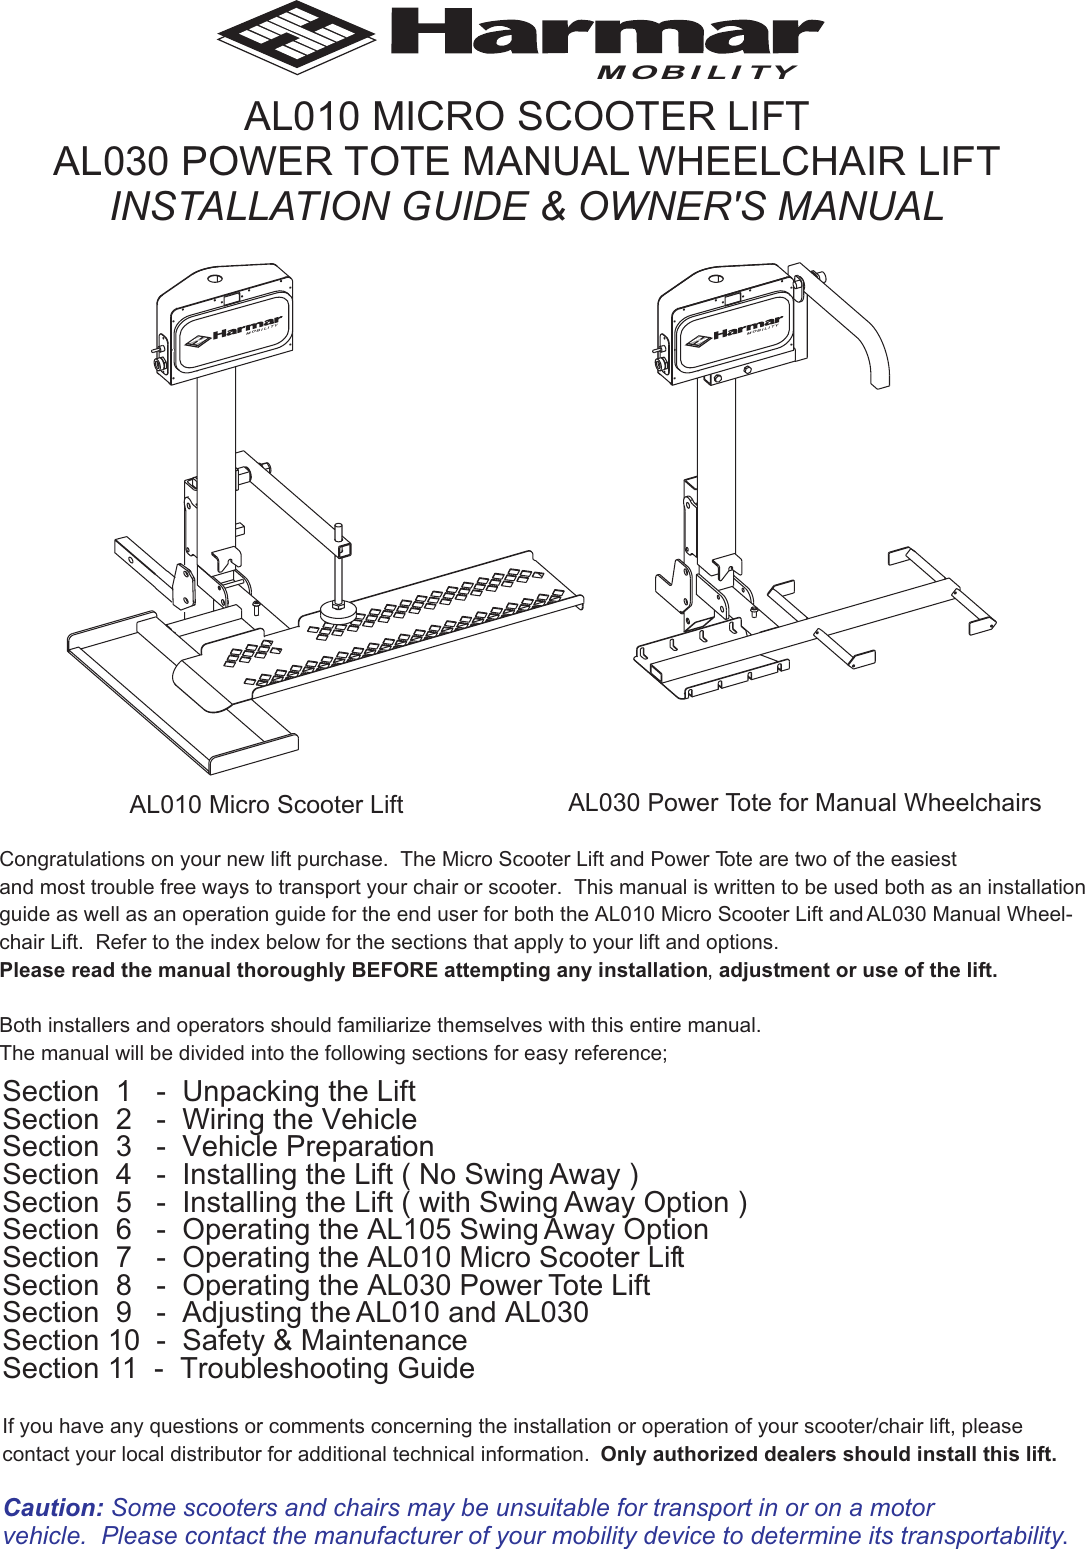 Harmar Mobility Al010 Users Manual And AL030 on